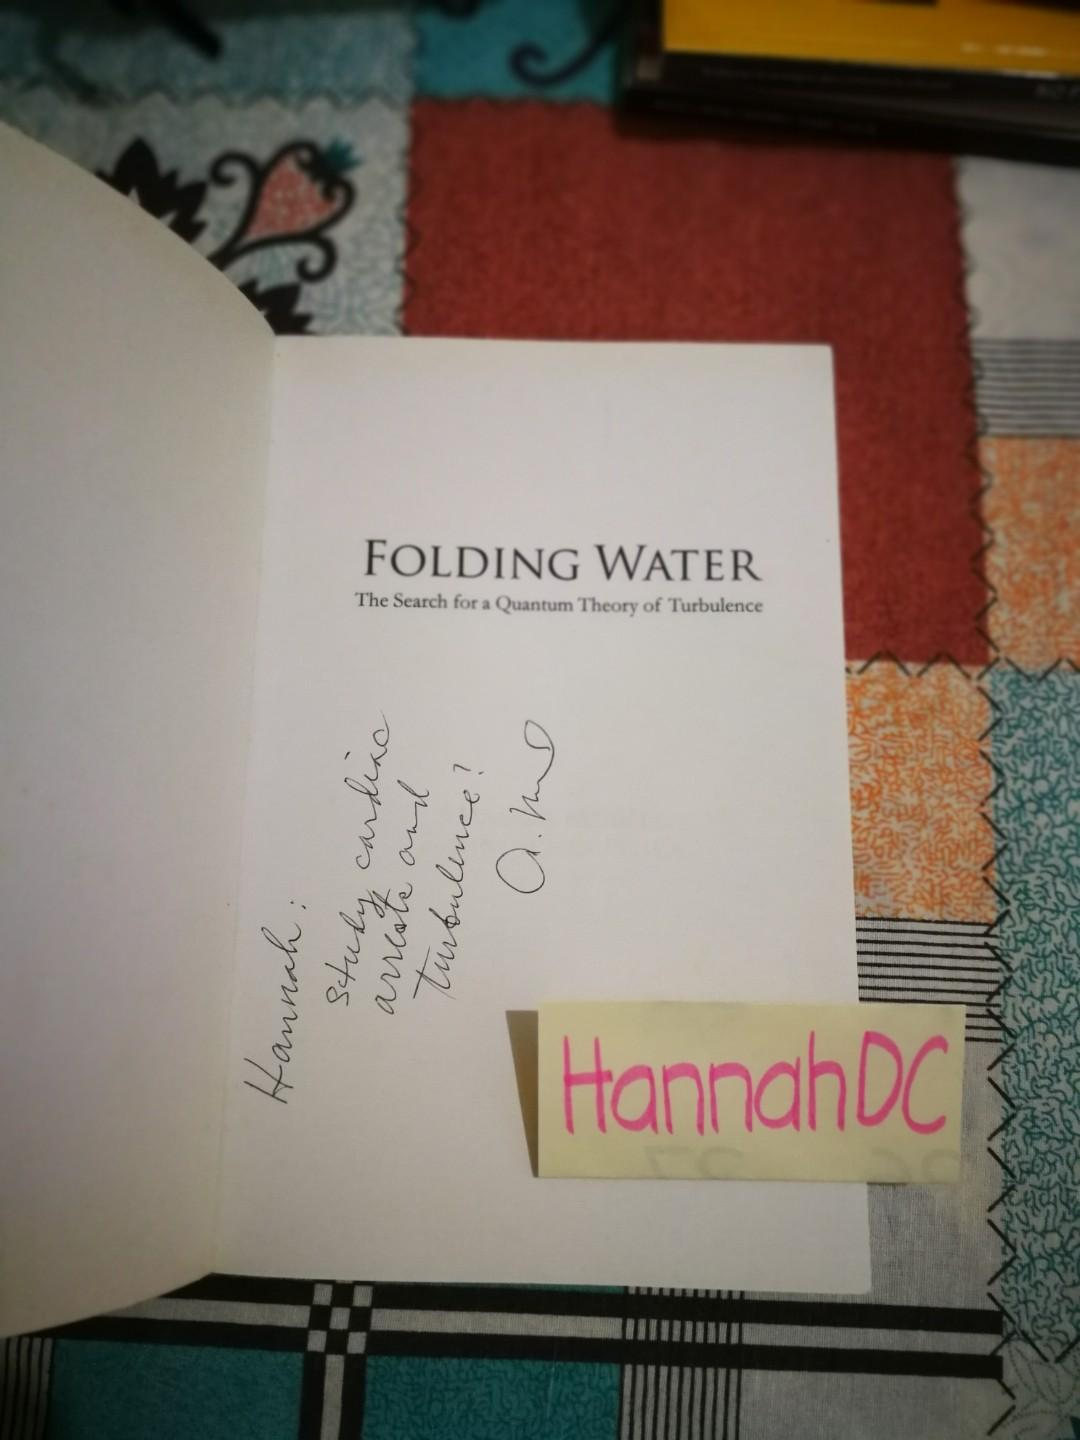 Folding Water: The Search for a Quantum Theory of Turbulence by Amador Muriel, Ph.D.